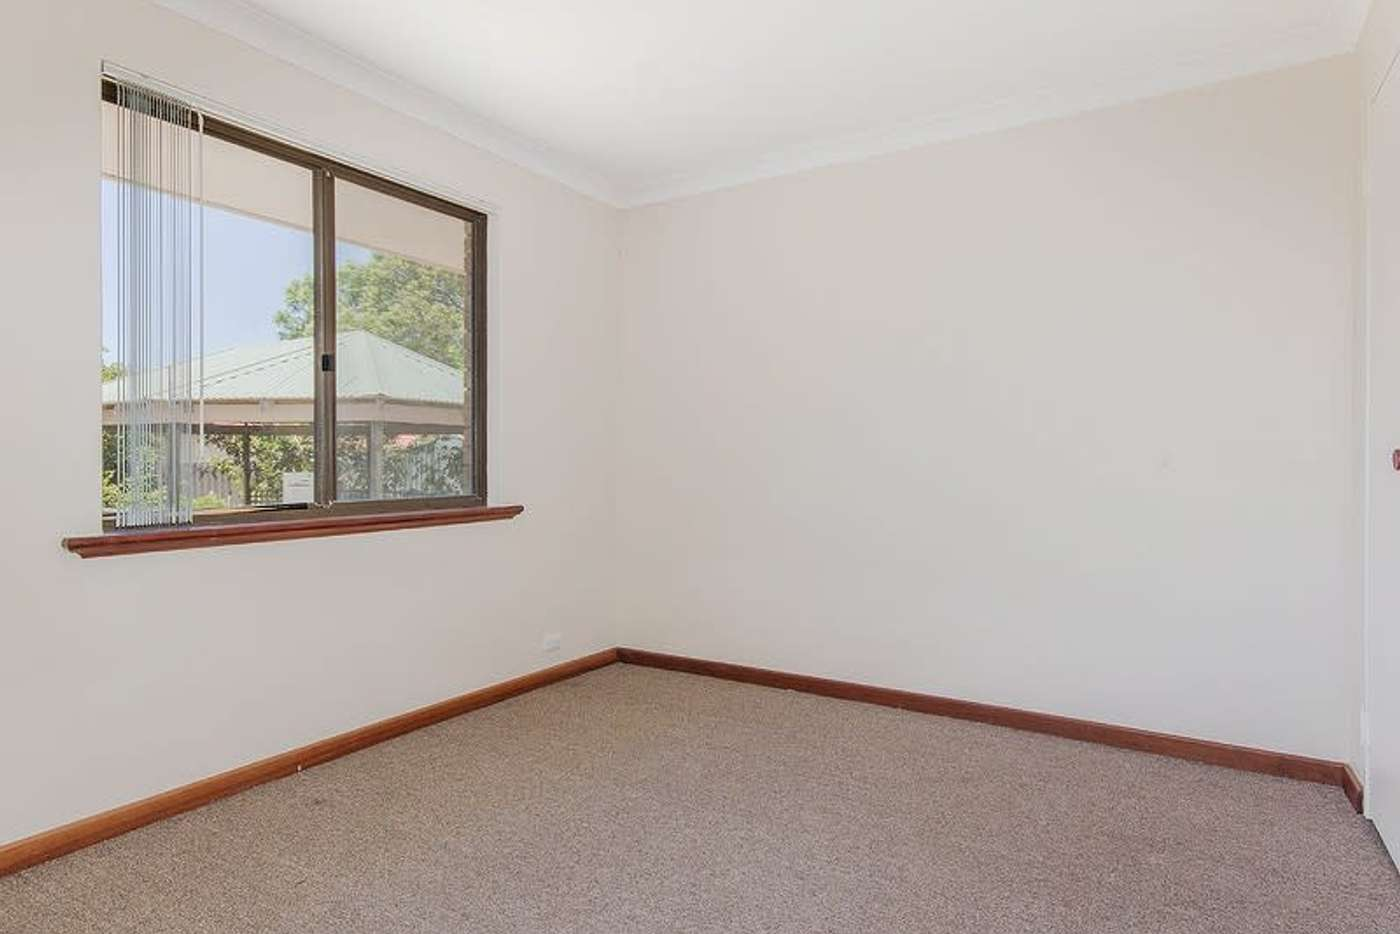 Seventh view of Homely house listing, 18 Milina Street, Hillman WA 6168